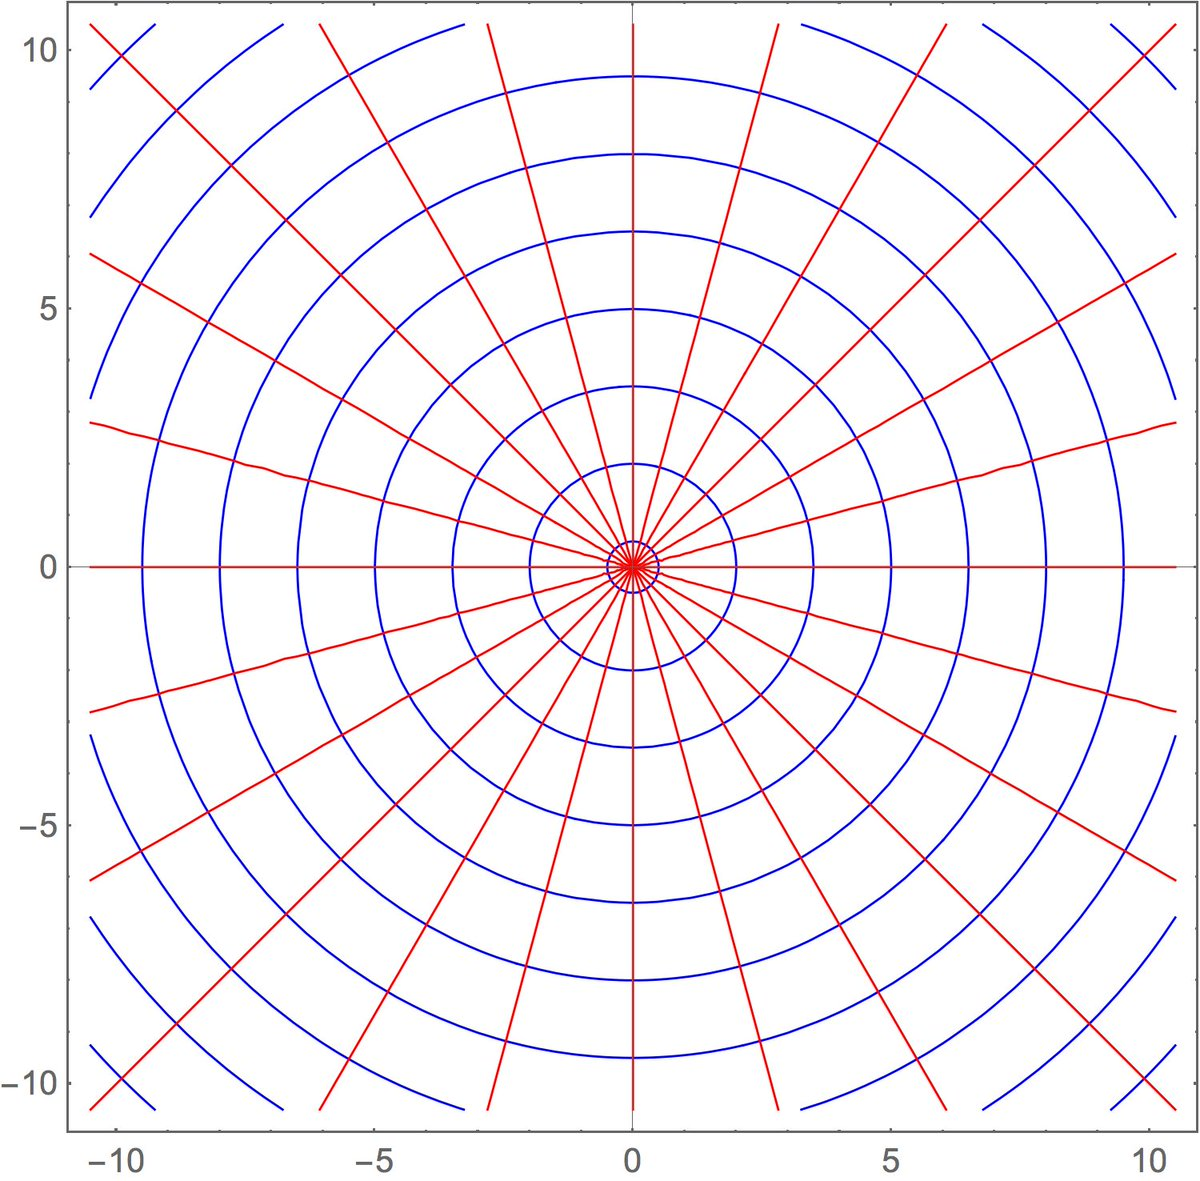 robert low on twitter pretty Actic Blue Line Grid polar coordinates a grid made of radial lines and circles centered at the origin